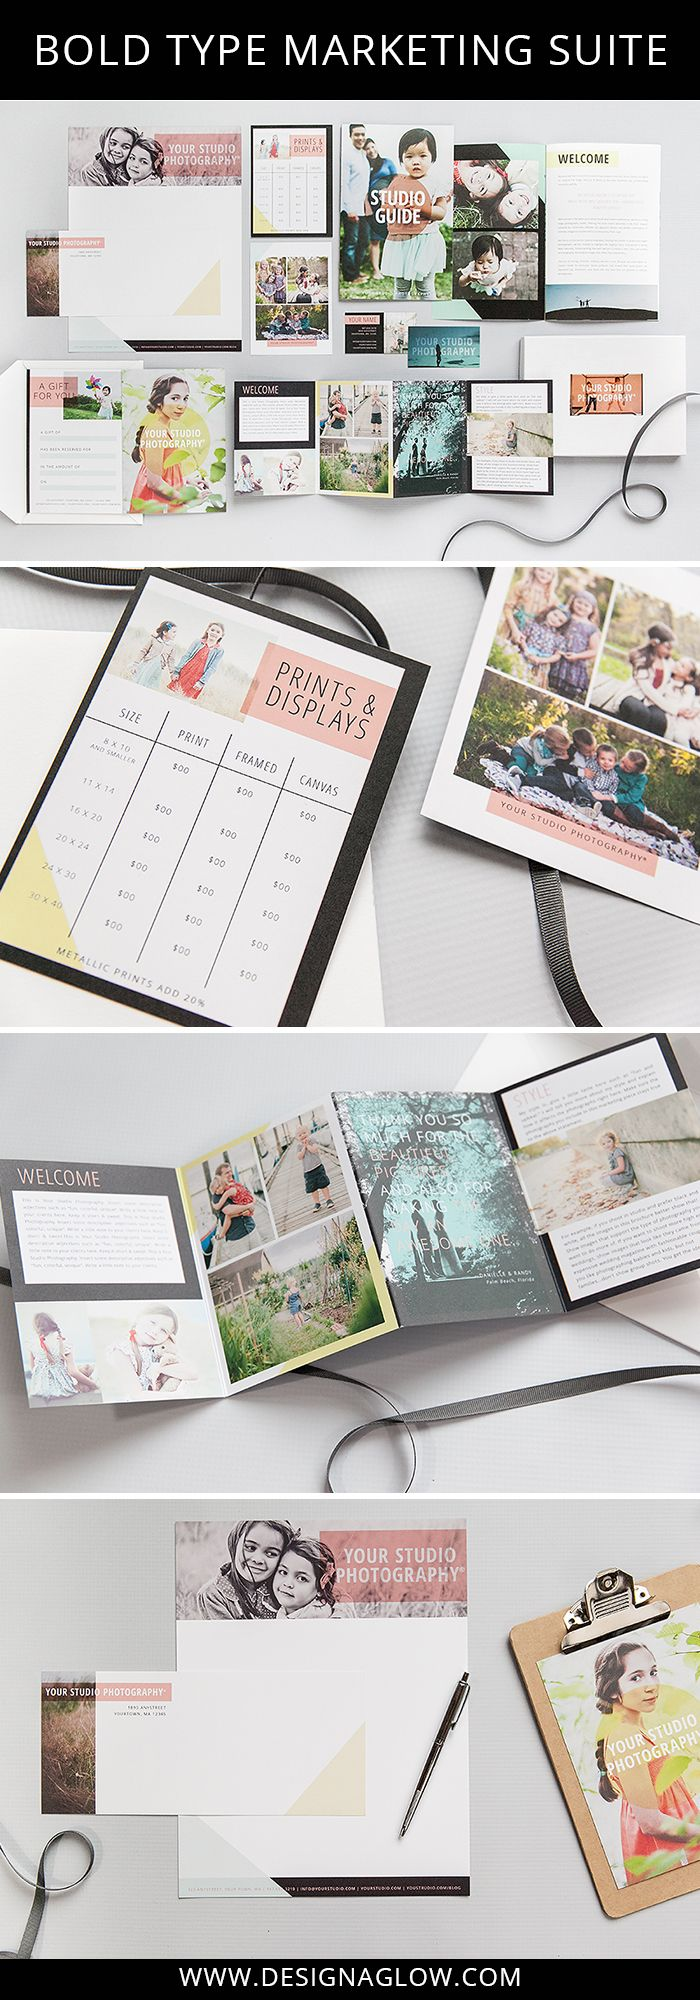 A stunning marketing suite for photographers. Make a bold statement for images that pop with the bang of an art gallery exhibit. What's more, our fresh palette of colors means any style of photography will benefit from these perfect pairings. #designaglow